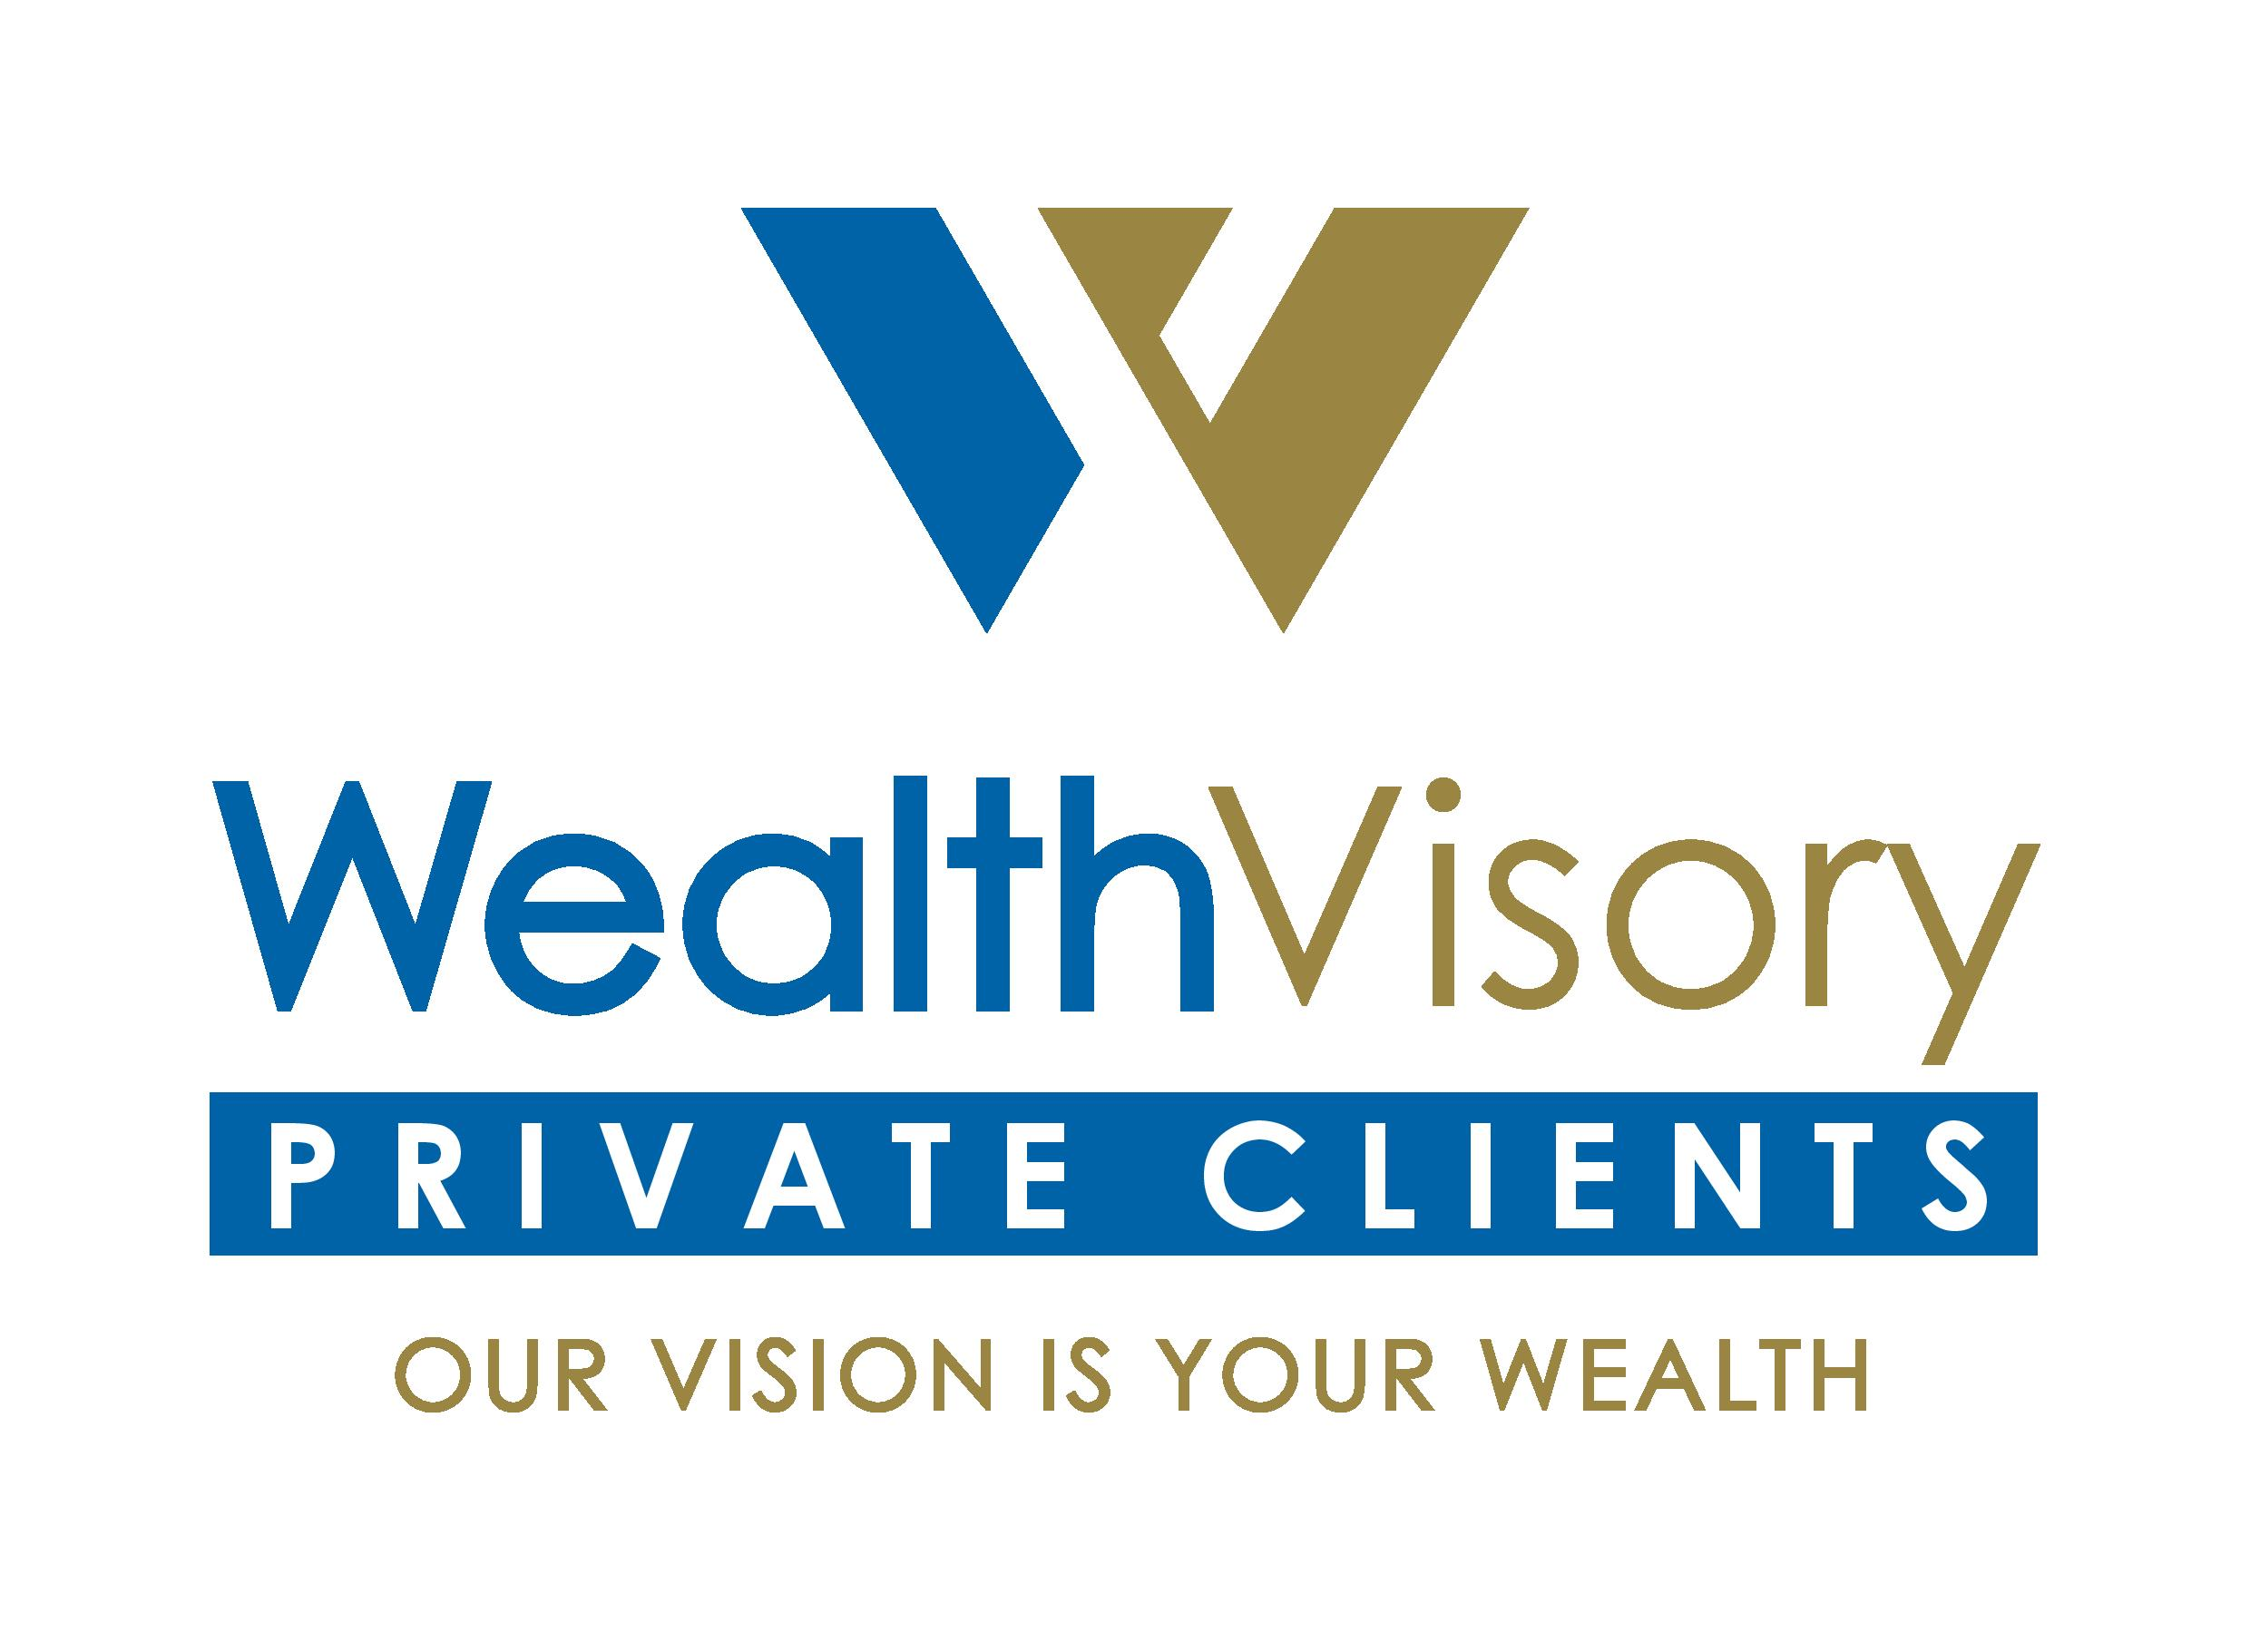 WealthVisory Private Clients logo with tagline